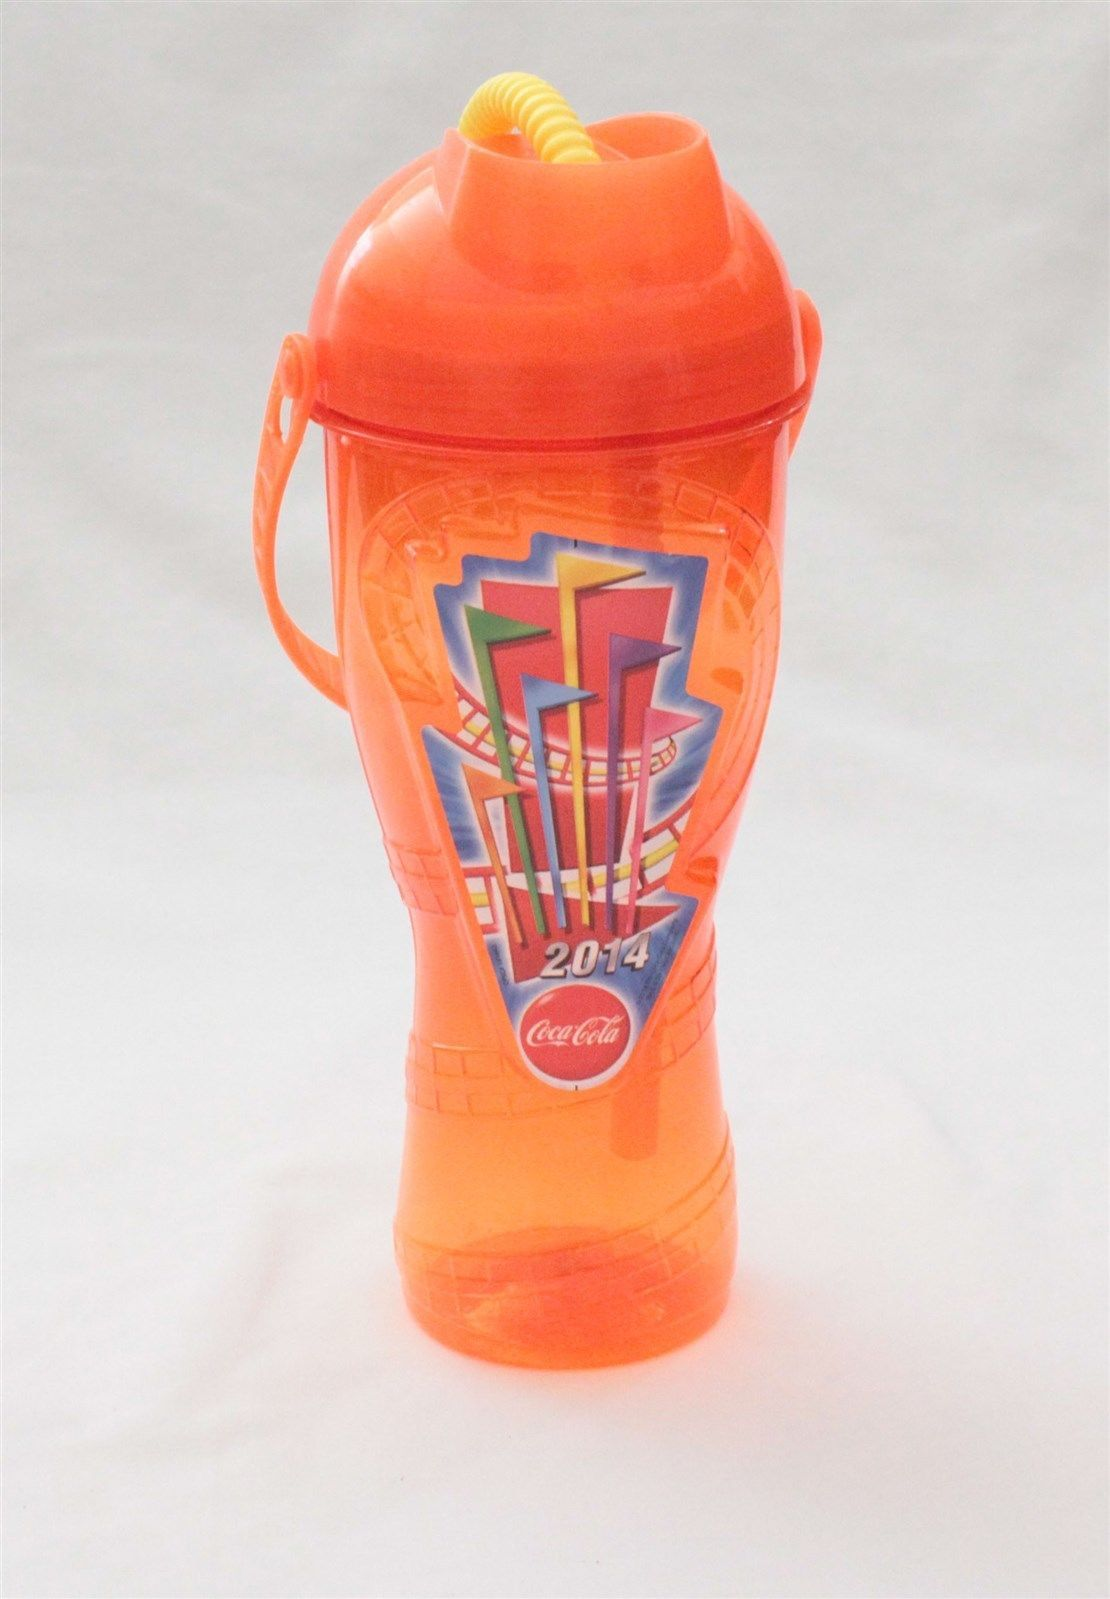 Nice 2014 Six Flags Theme Park Orange Souvenir Water Bottle Cup With Straw Check More At Http Harmonisproduction Com 20 Cup With Straw Six Flags Theme Park